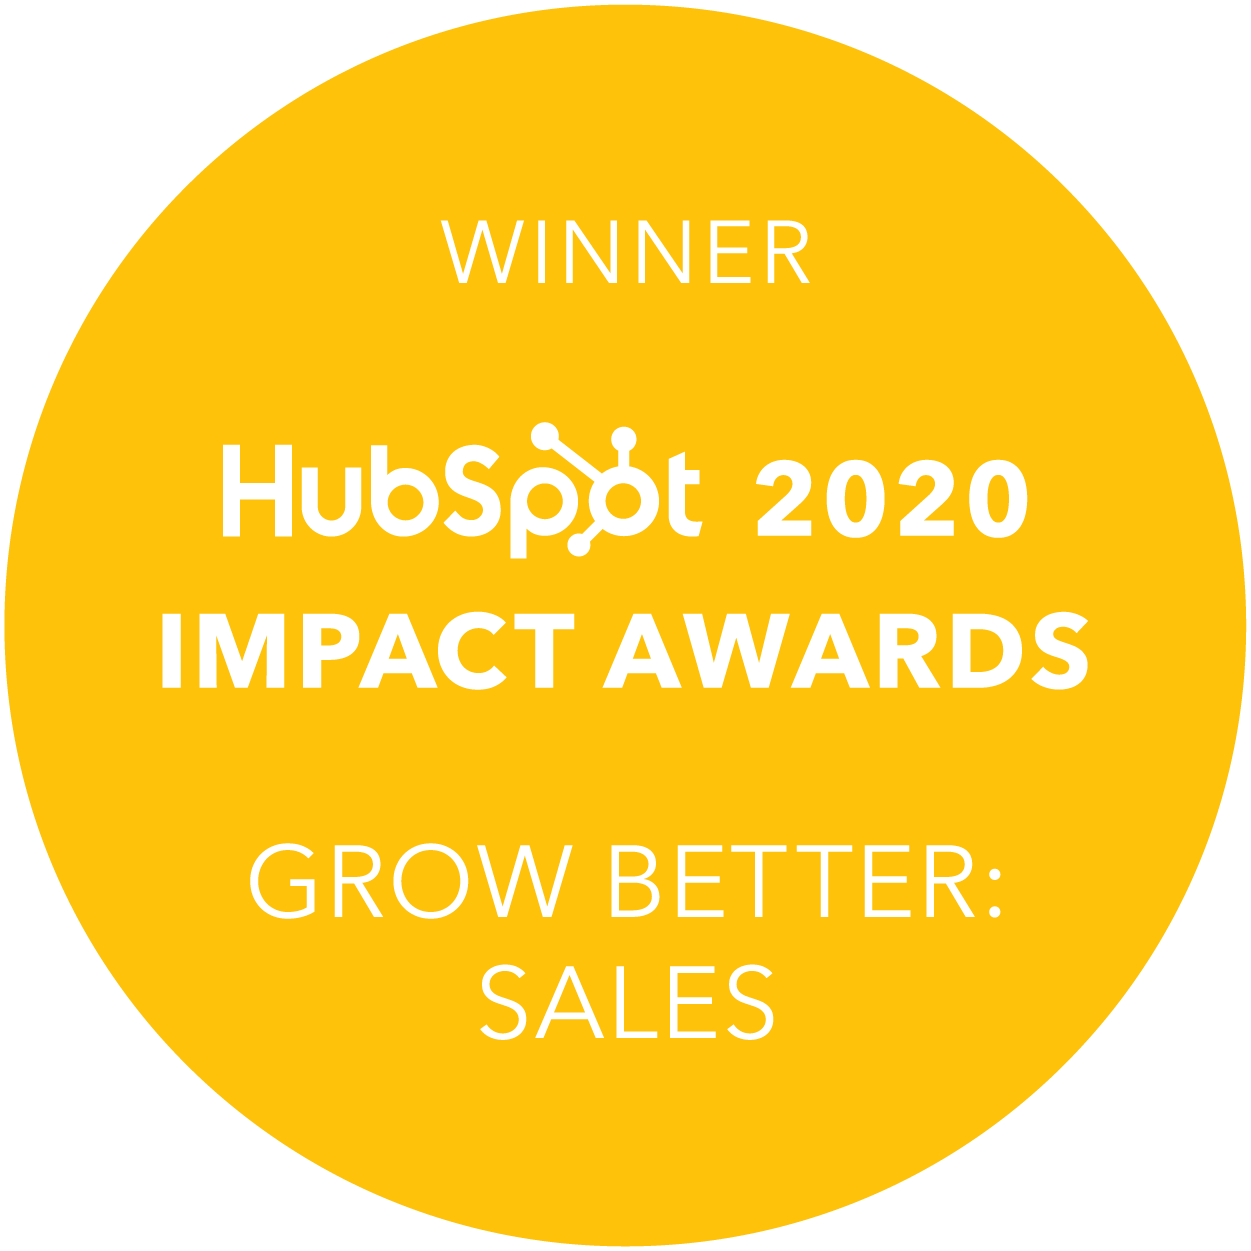 RevM HubSpot Award Winner and HubSpot Partner Agency in Surrey